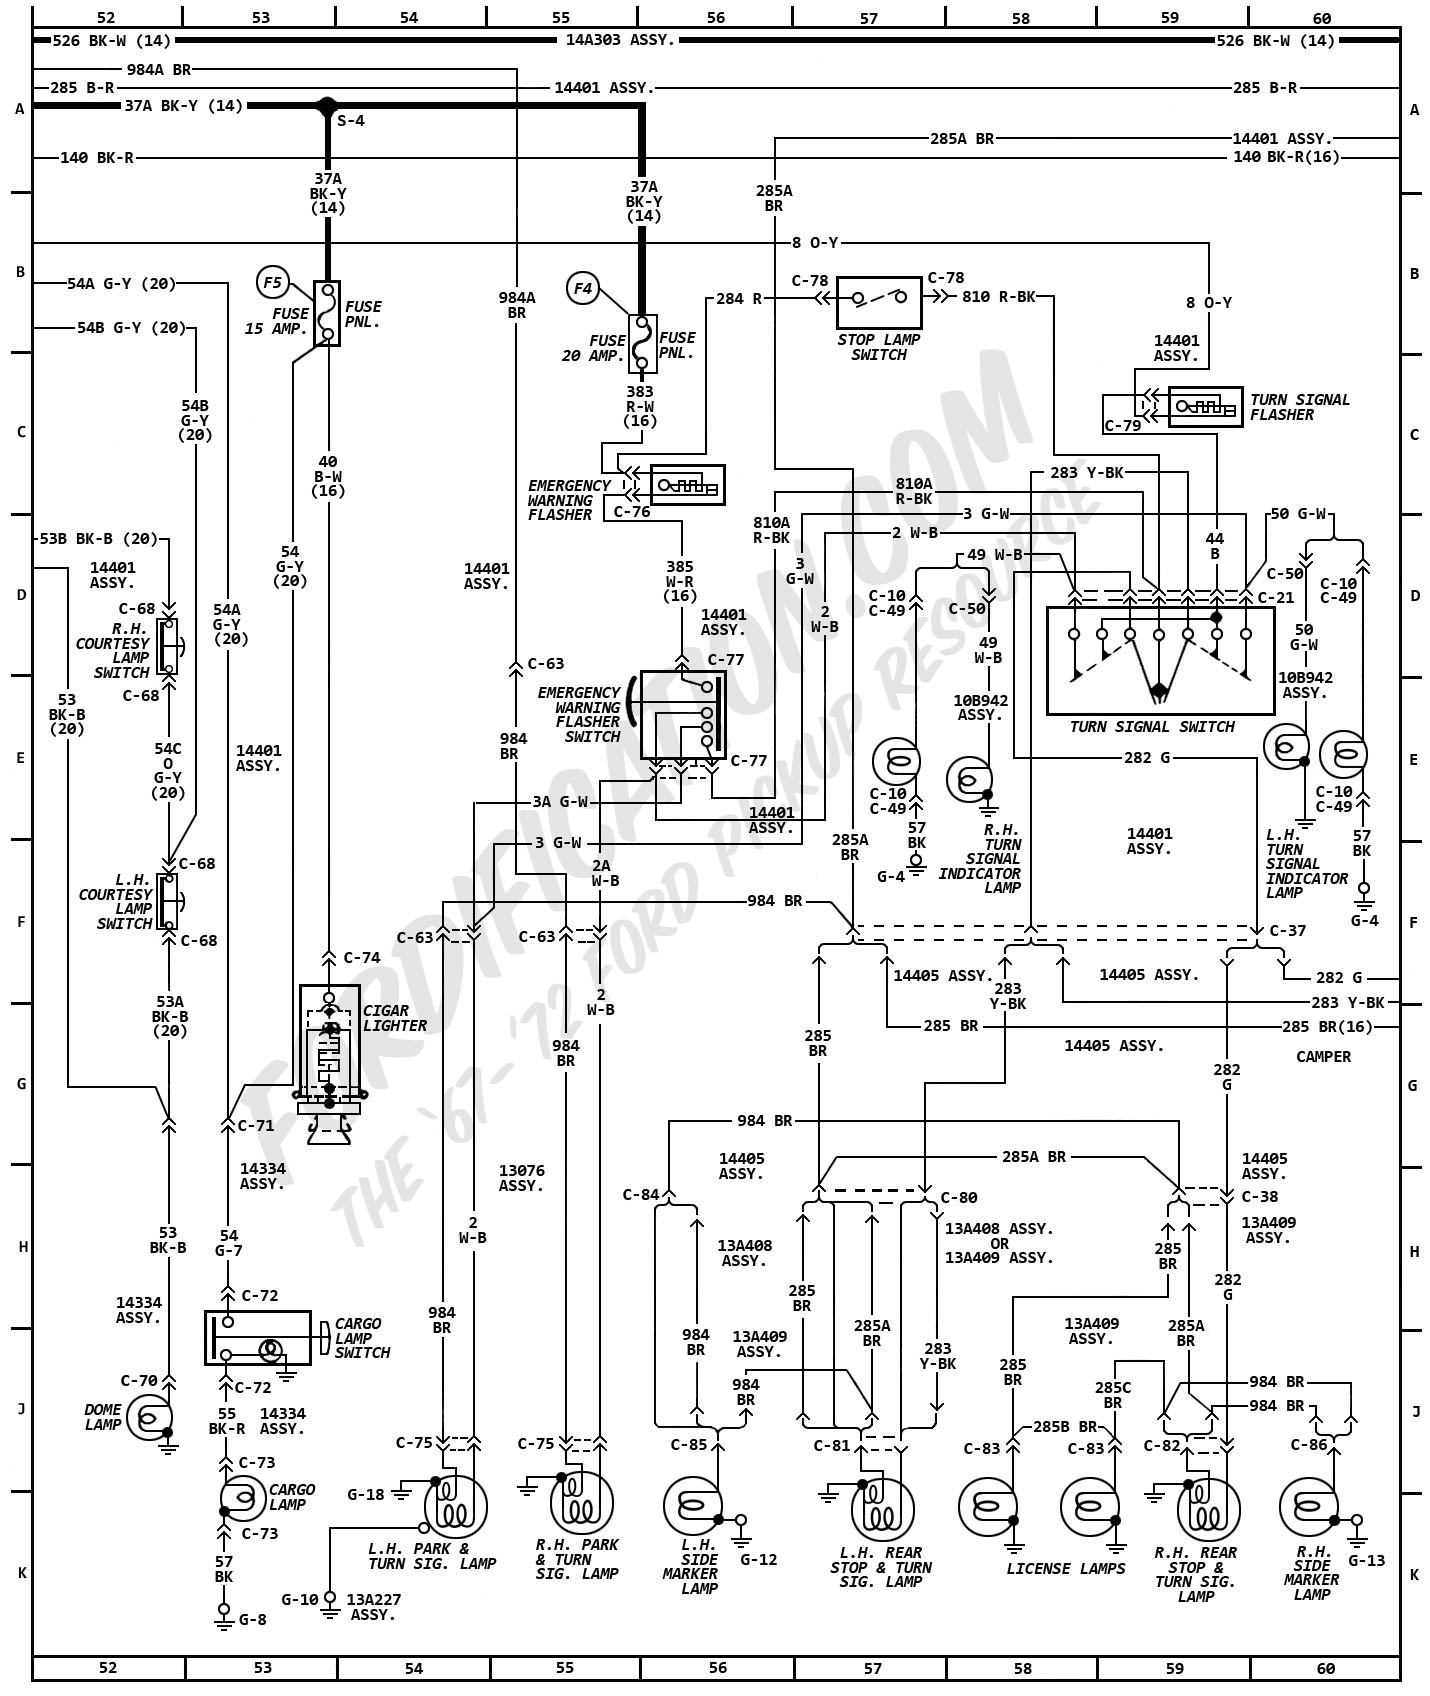 ford pickup wiring diagrams wiring library rh 76 bloxhuette de 1976 Ford Truck Wiring Diagram 1976 Ford Truck Wiring Diagram